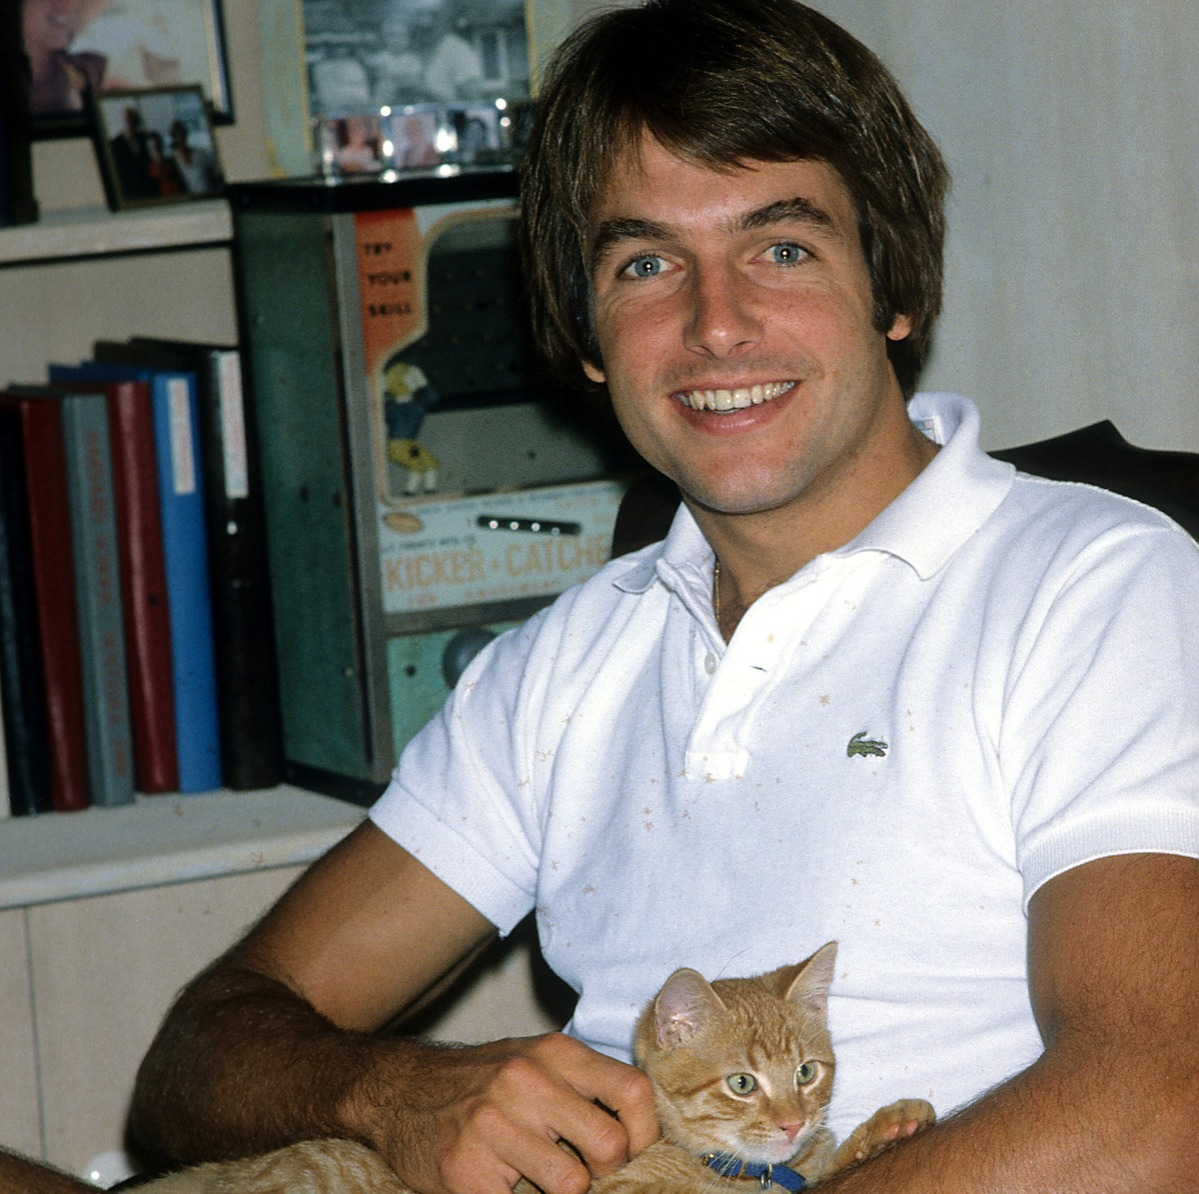 Actor Mark Harmon poses with a cat for a portrait in circa 1985.